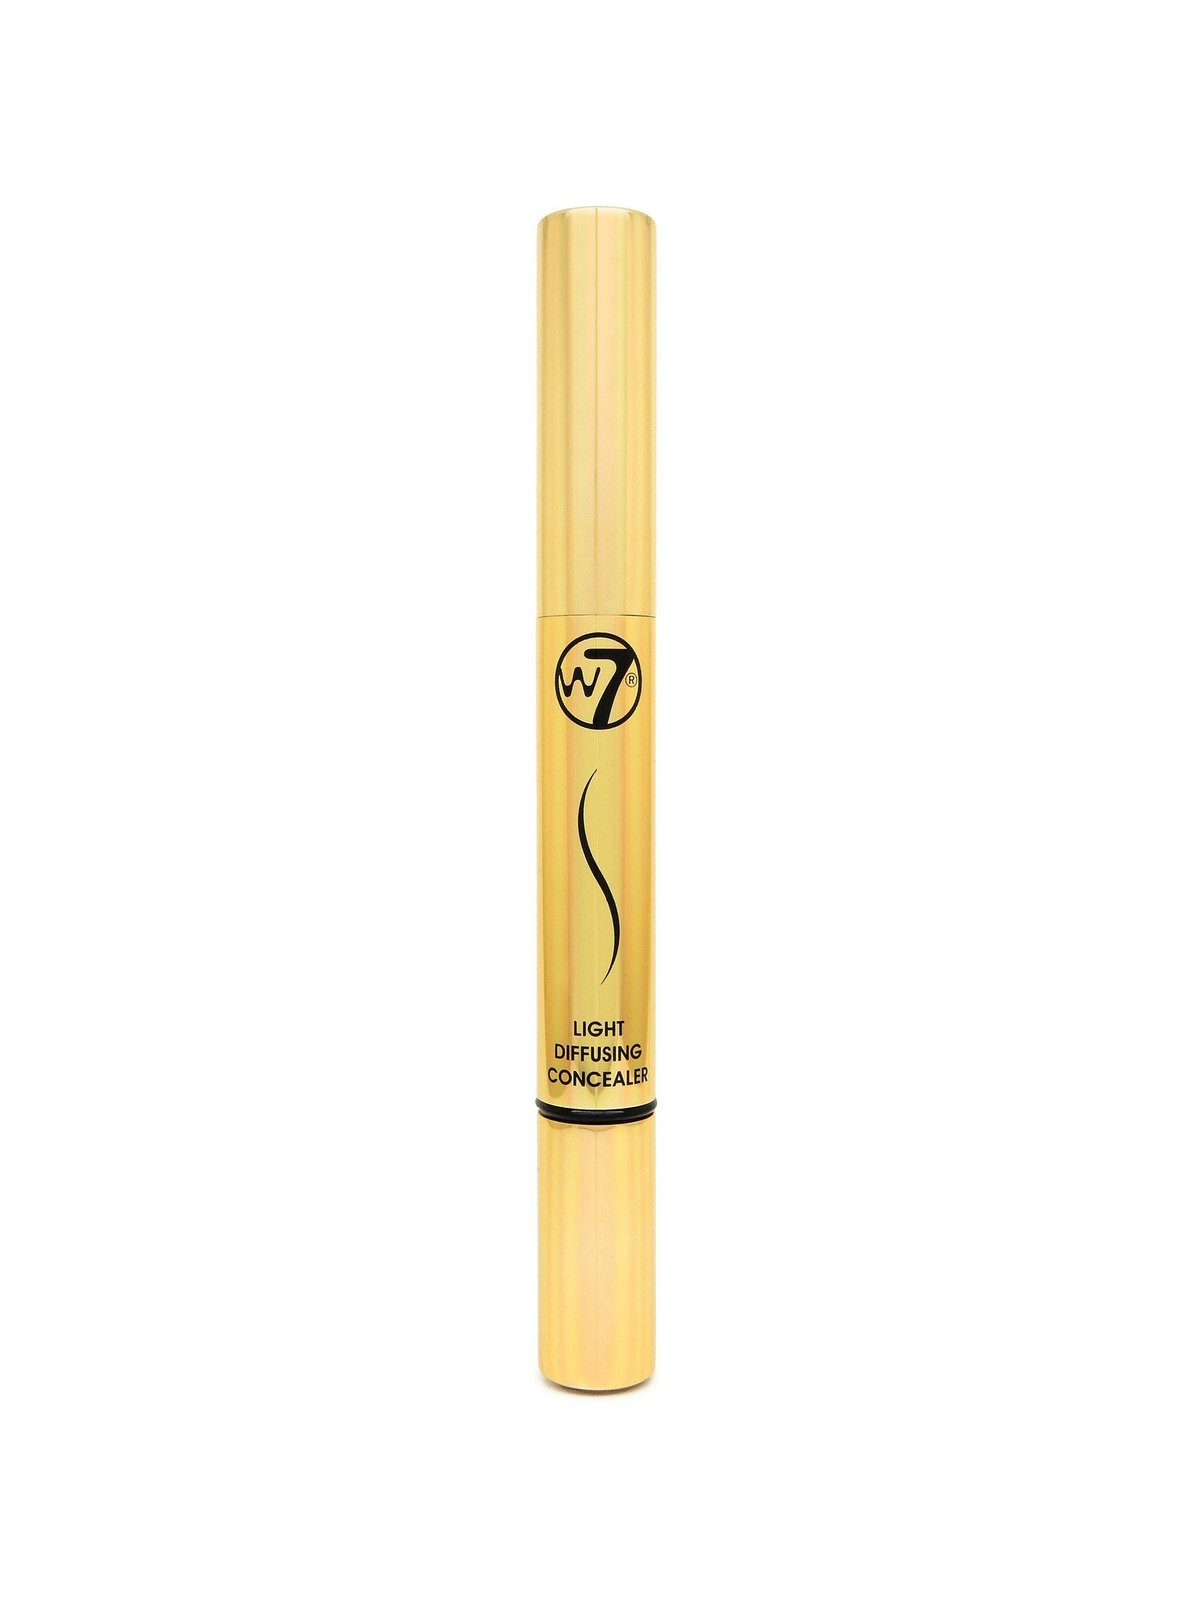 W7 Light Diffusing Concealer (gold case) image